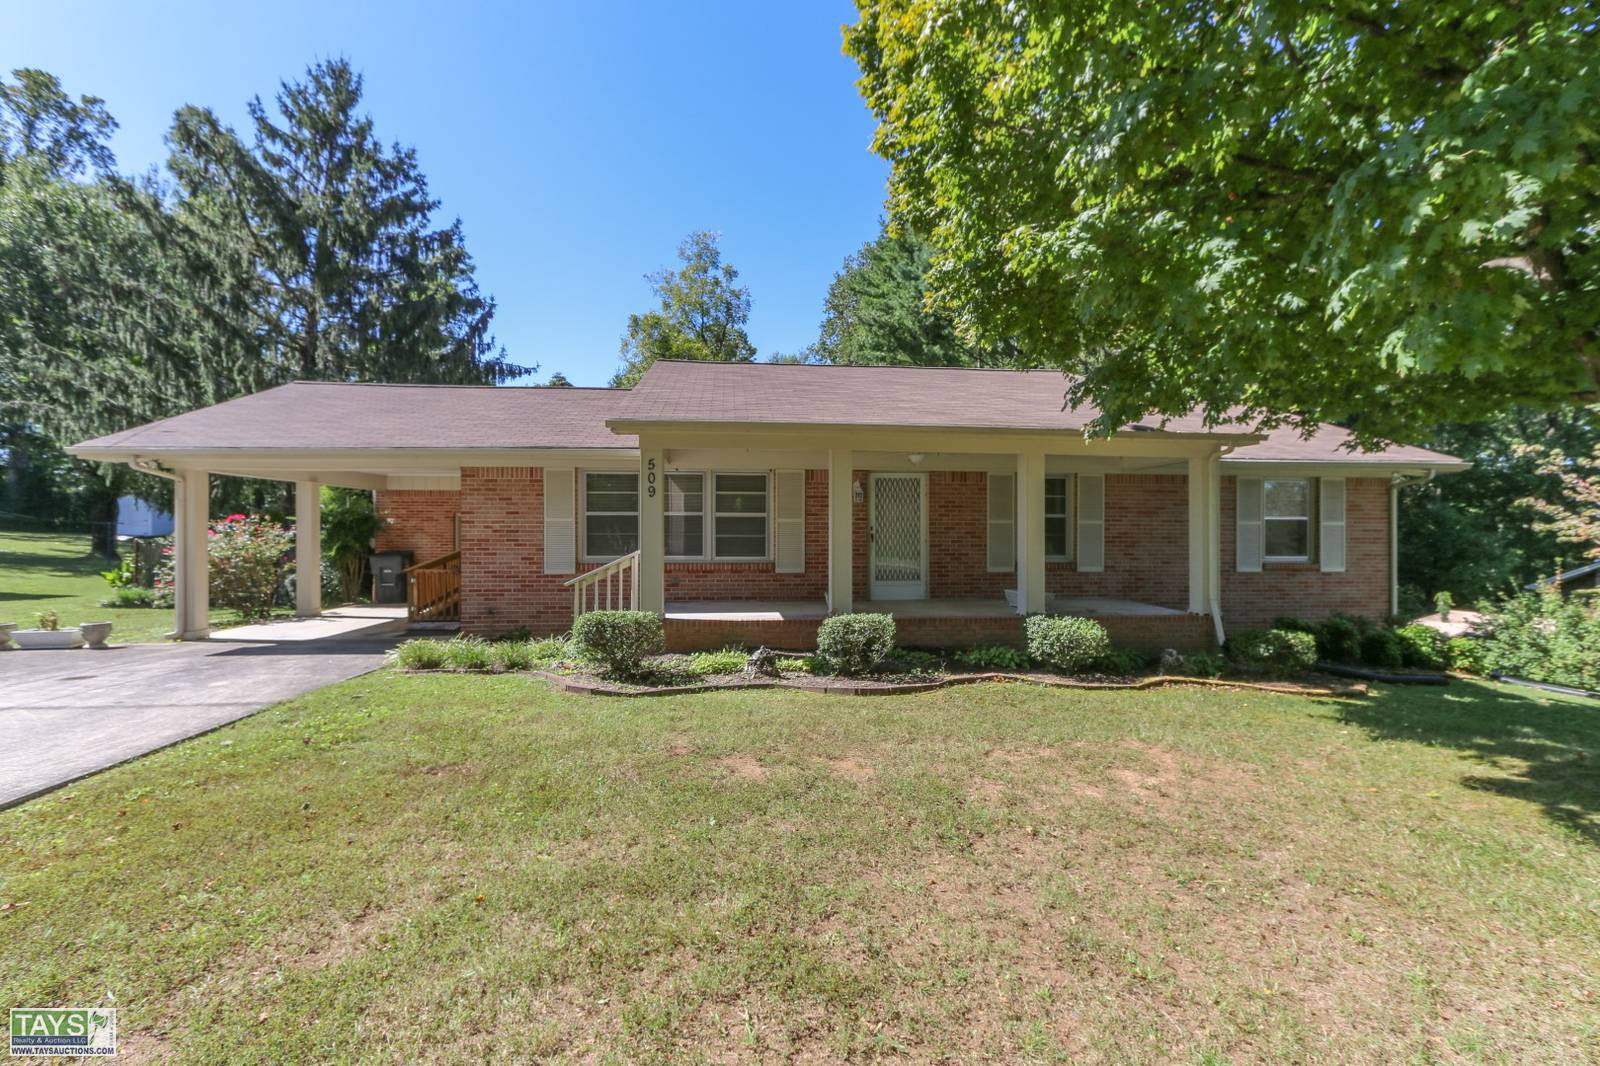 ONLINE ABSOLUTE AUCTION: 4 BR / 3 BA BRICK HOME on 0.5 Ac±